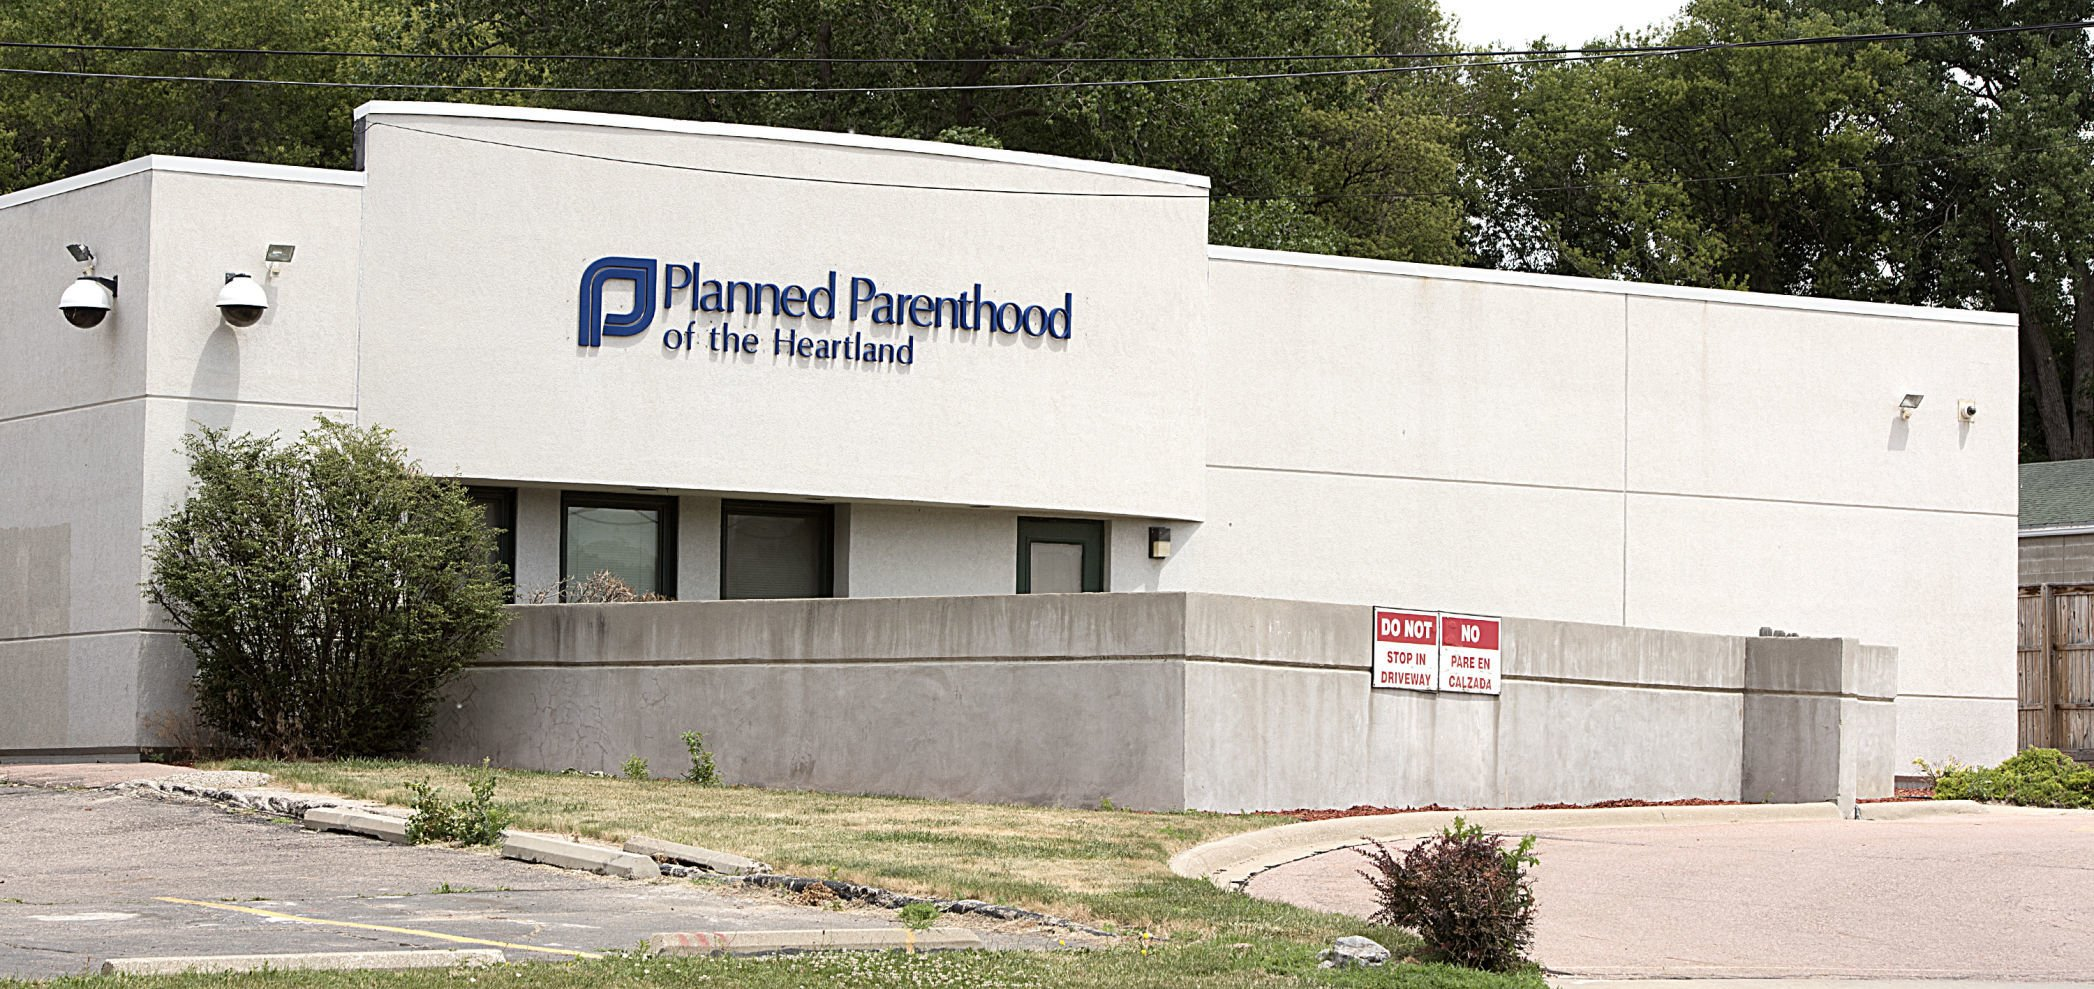 Abortion clinics in council bluffs iowa